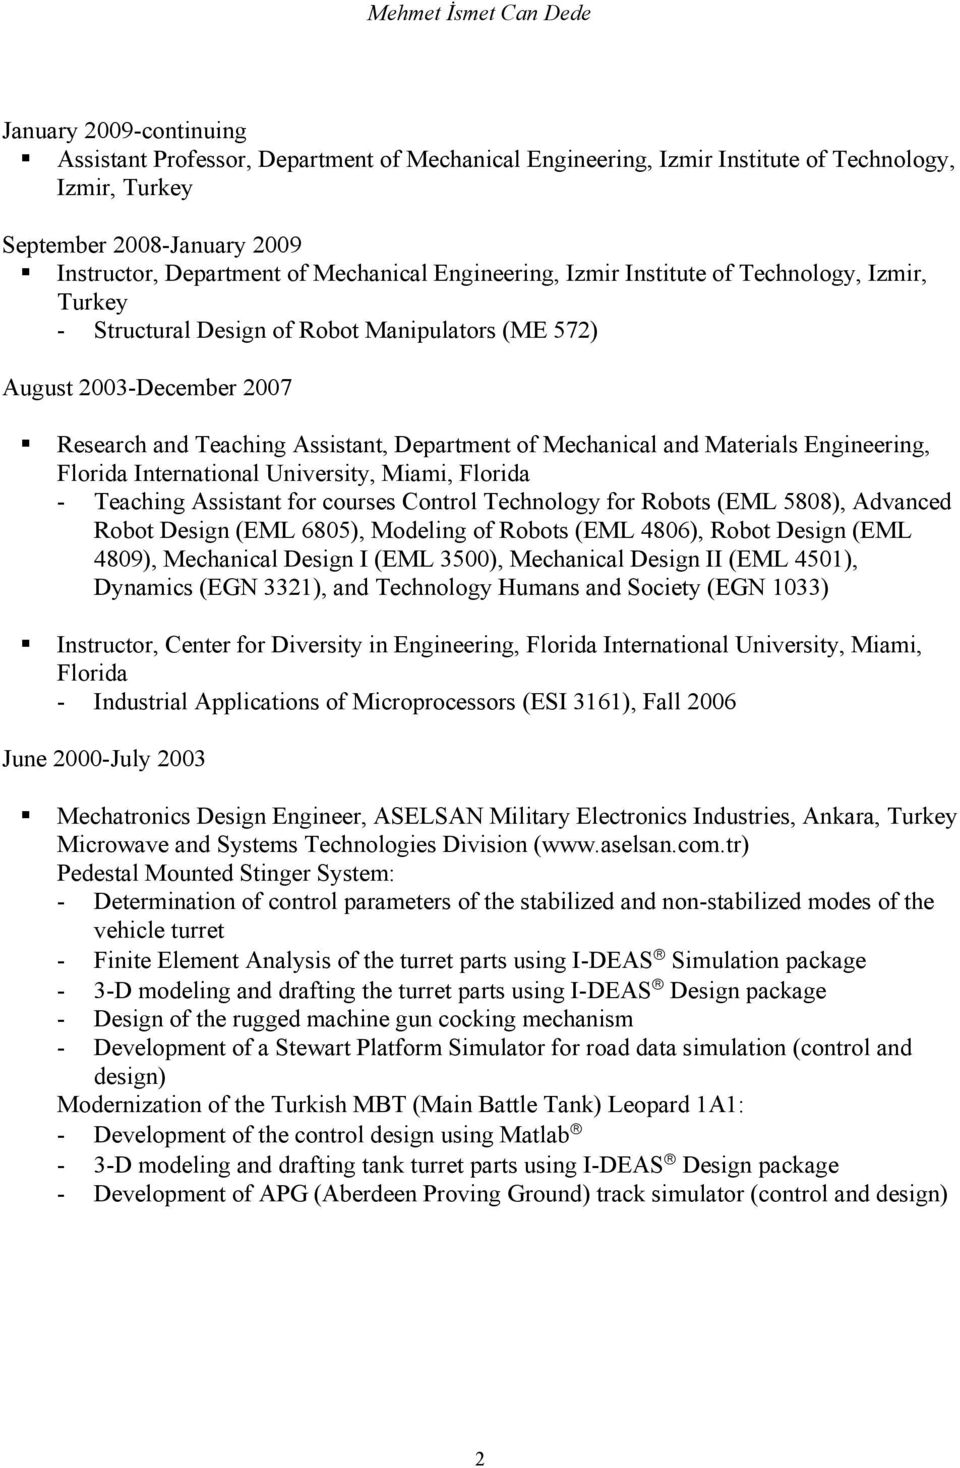 Materials Engineering, Florida International University, Miami, Florida - Teaching Assistant for courses Control Technology for Robots (EML 5808), Advanced Robot Design (EML 6805), Modeling of Robots